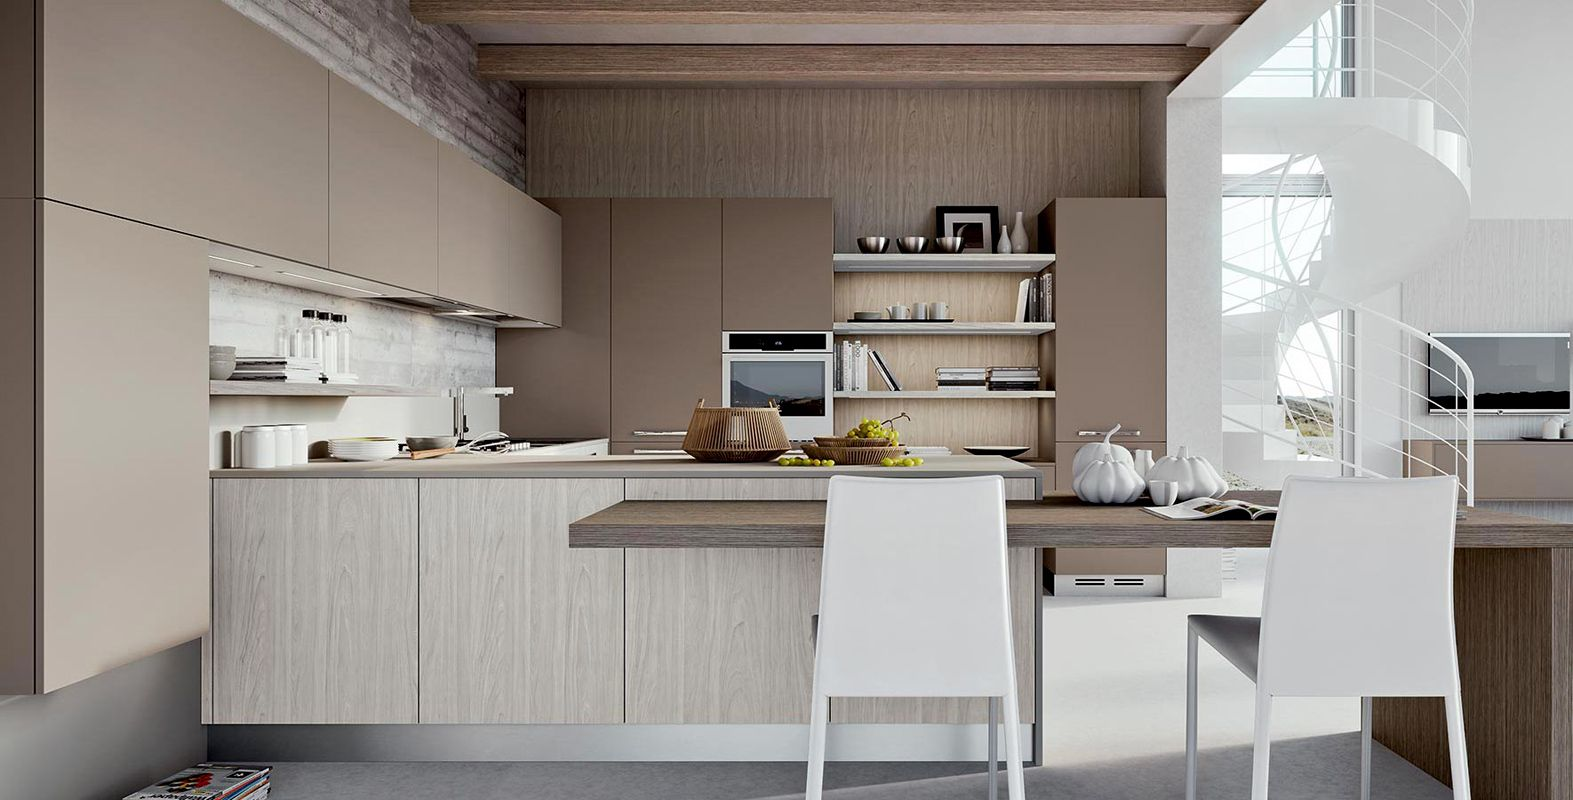 Immagine correlata casa kitchen design kitchen e beige kitchen